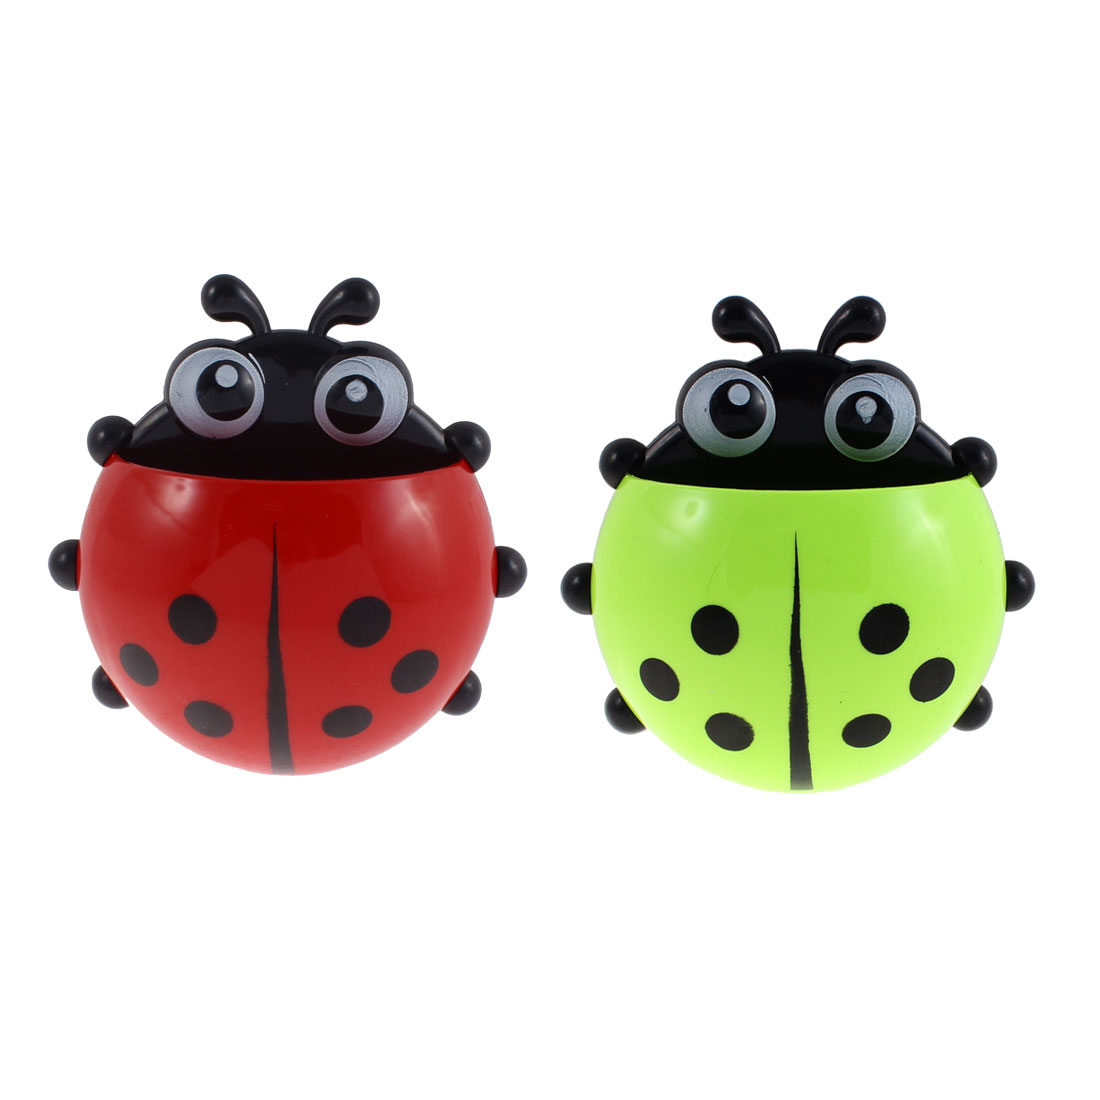 Plastic Ladybird Design Suction Cup Toothbrush Holder Green Red 2 Pcs